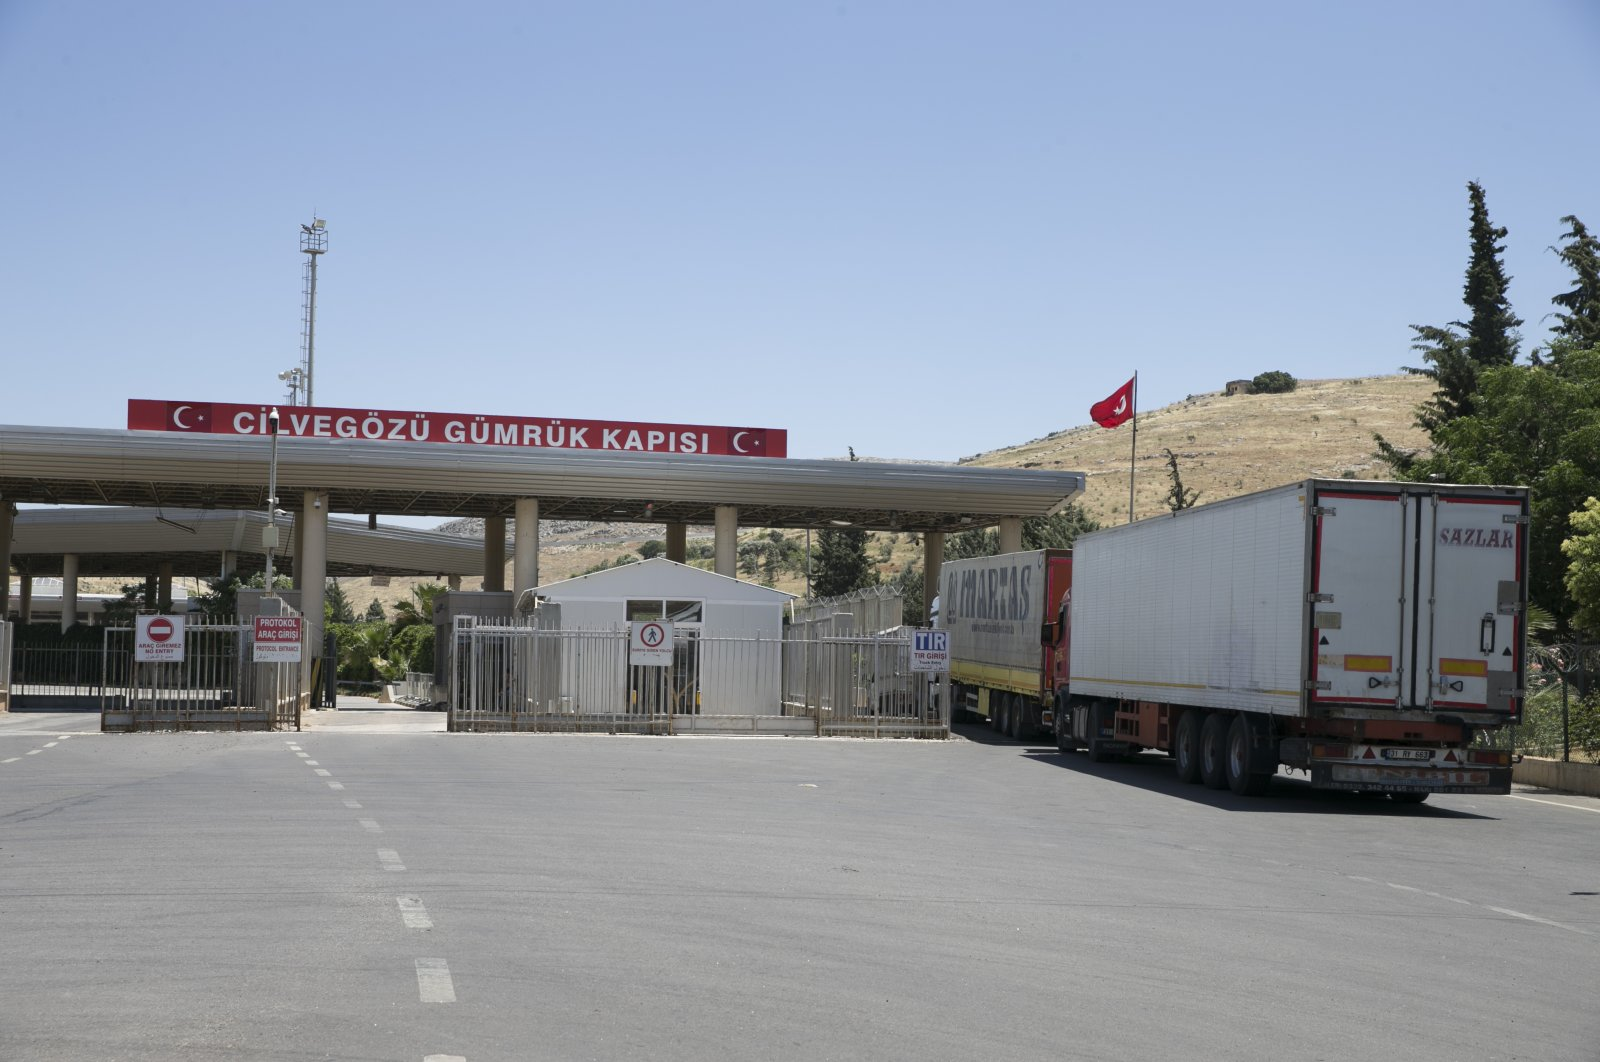 Trucks carrying humanitarian aid cross through the Cilvegözü Border Gate to deliver supplies to civilians in Syria's Idlib province, June 3, 2020. (AA Photo)